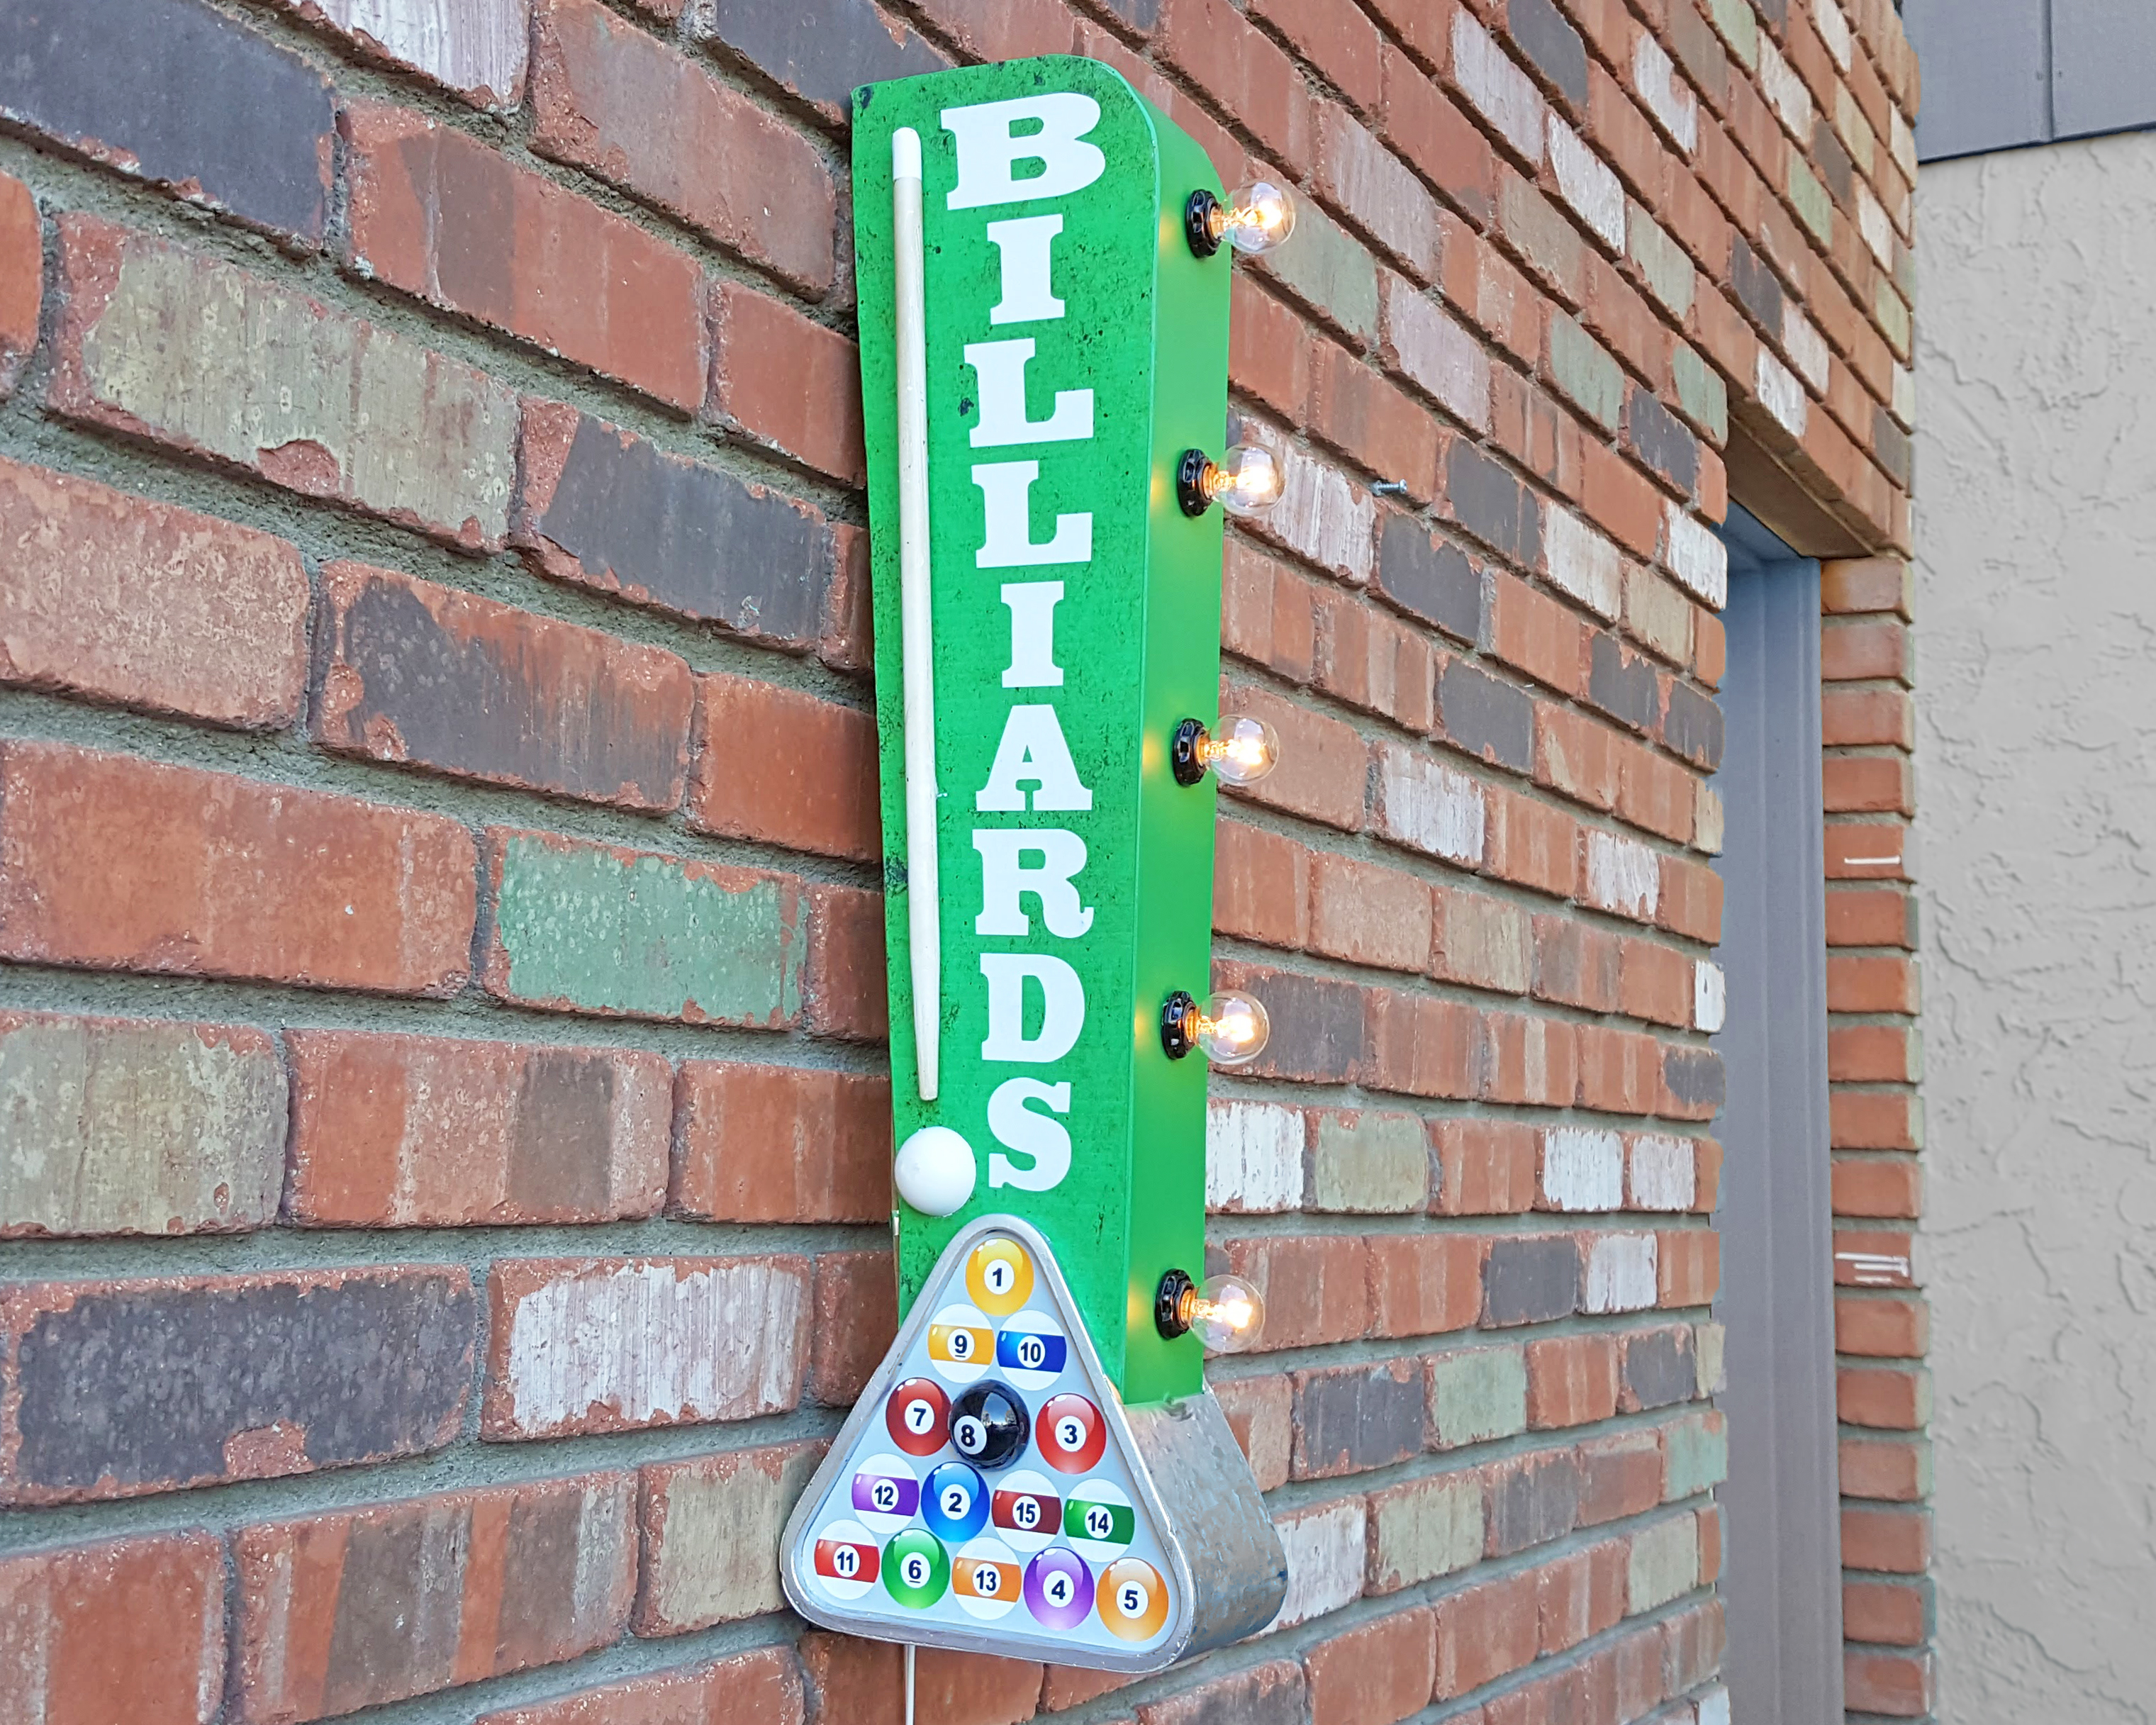 Plug-In or Battery Operated. Billiards Pool Table Hall Double Sided Metal Vintage Style Rustic Marquee Light Up Sign - Plug-In (clear bulbs)